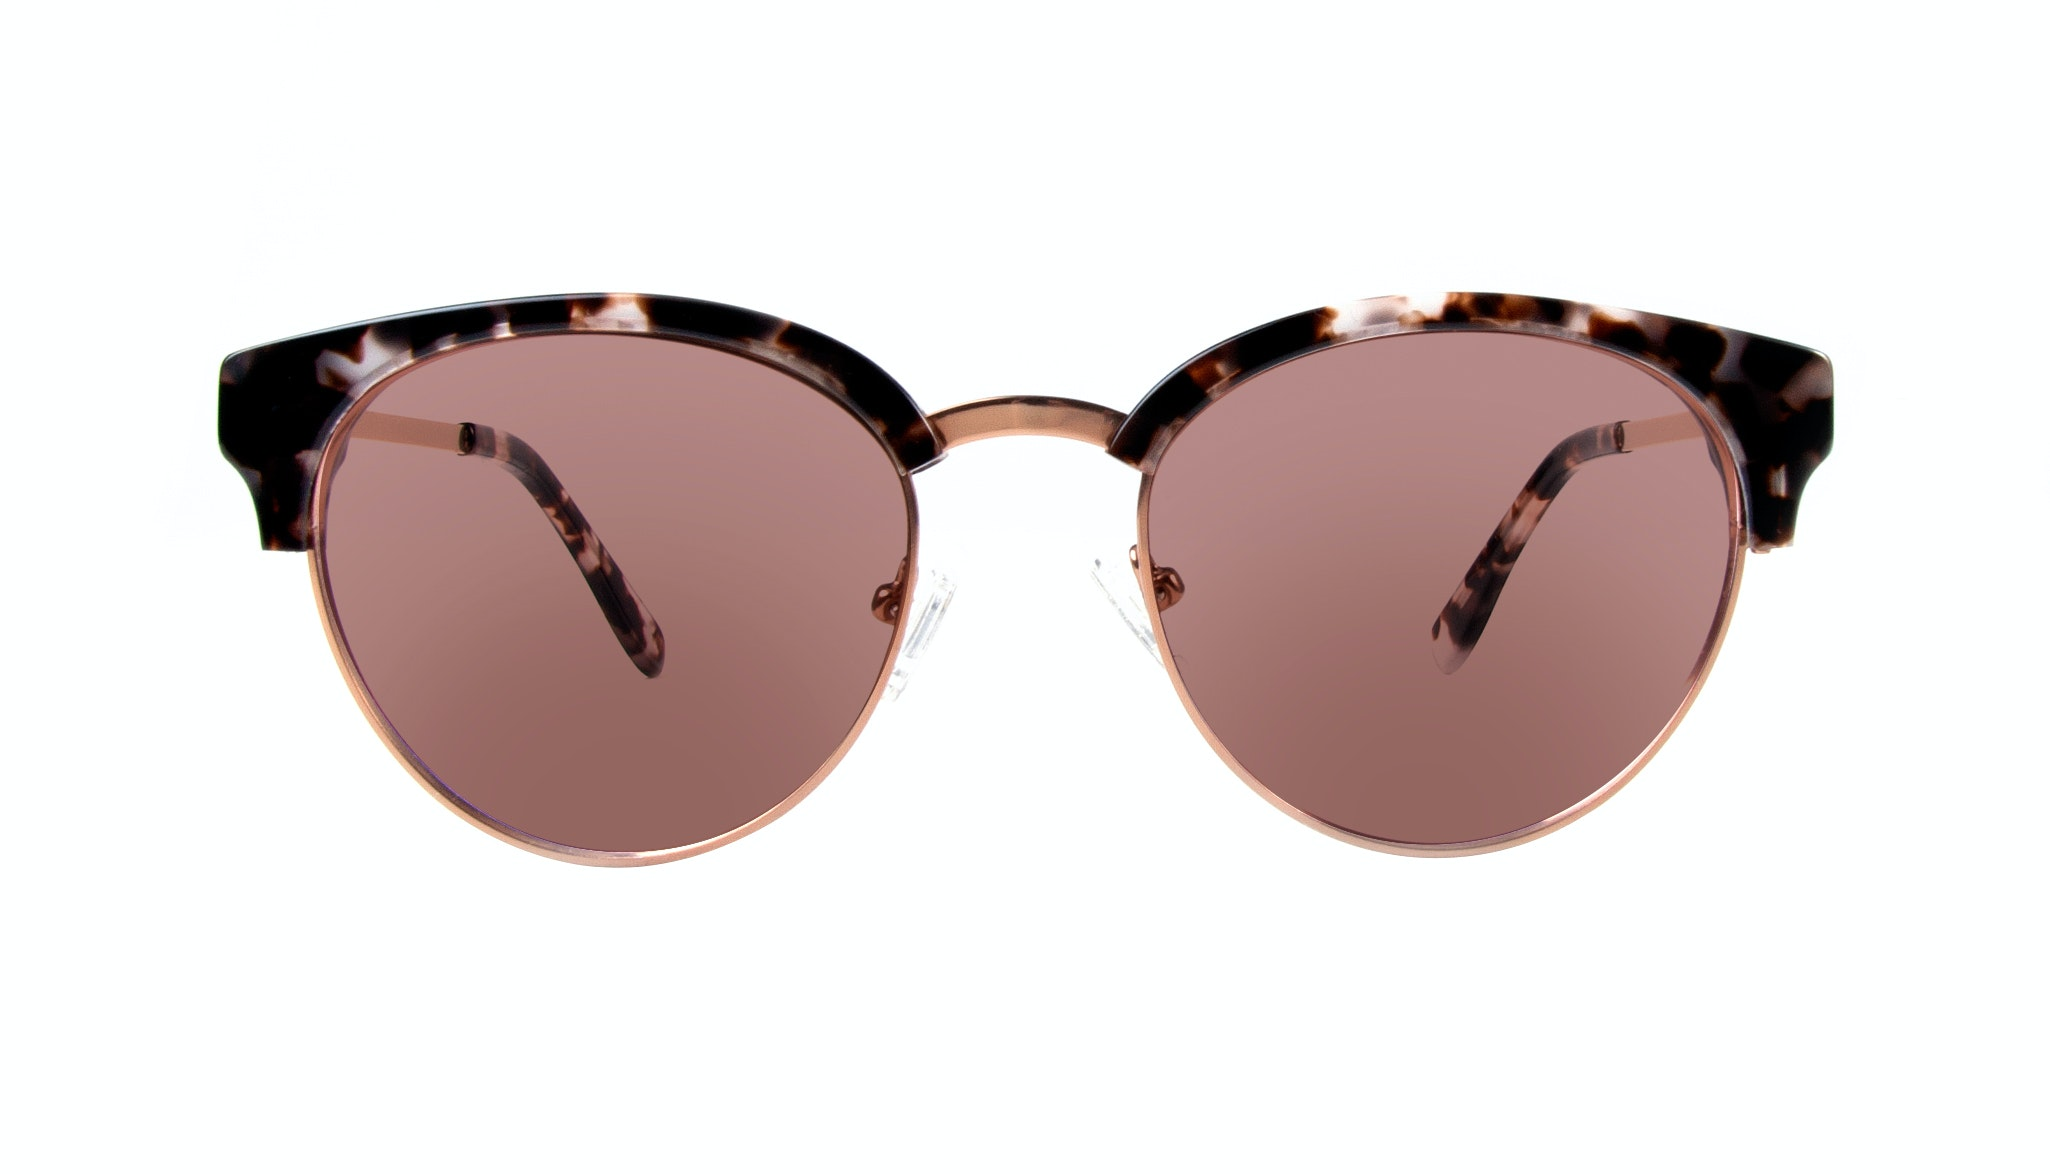 Affordable Fashion Glasses Round Sunglasses Women Allure Mocha Tortoise